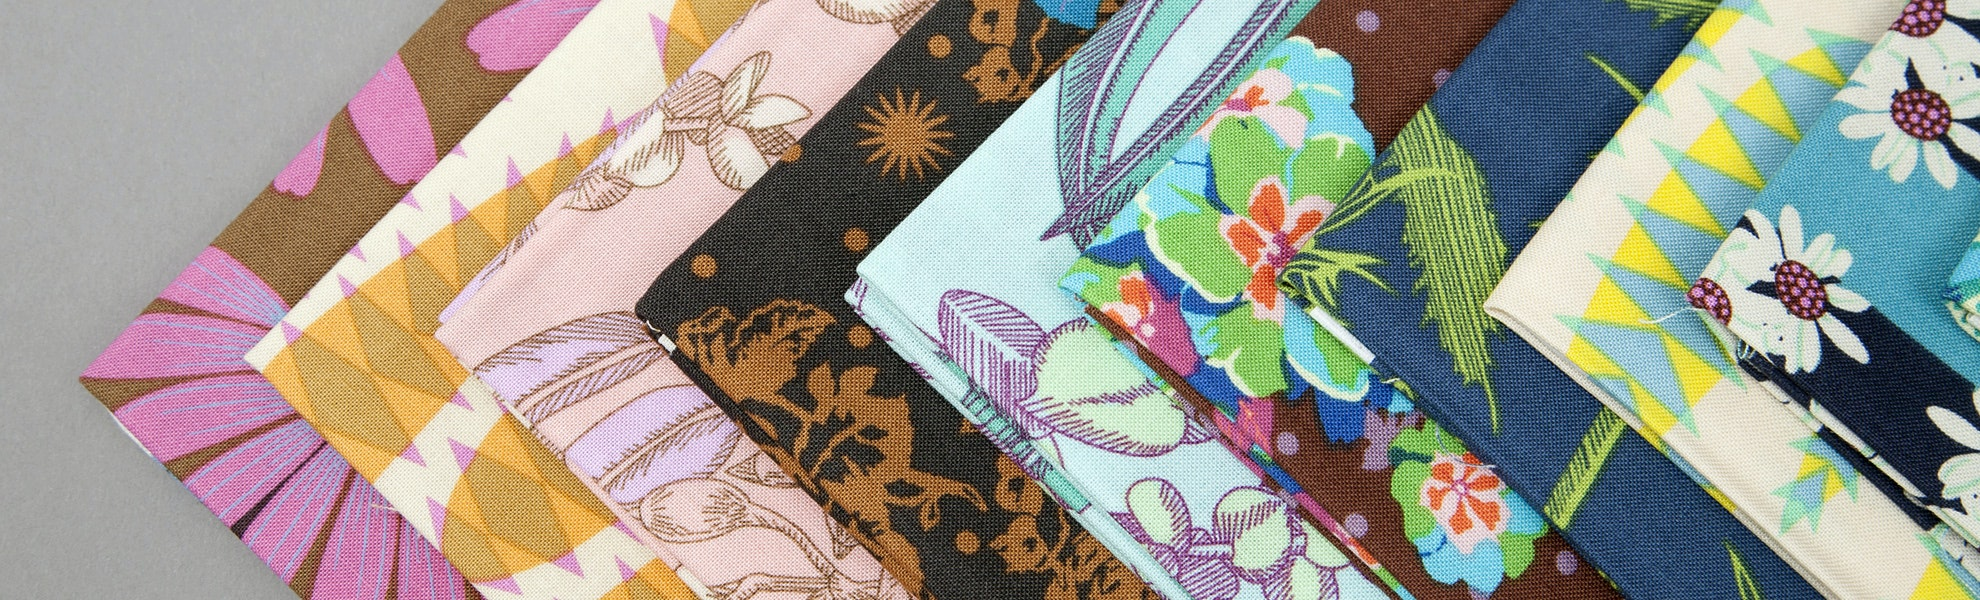 Pretty Potent Fat Quarter Bundle